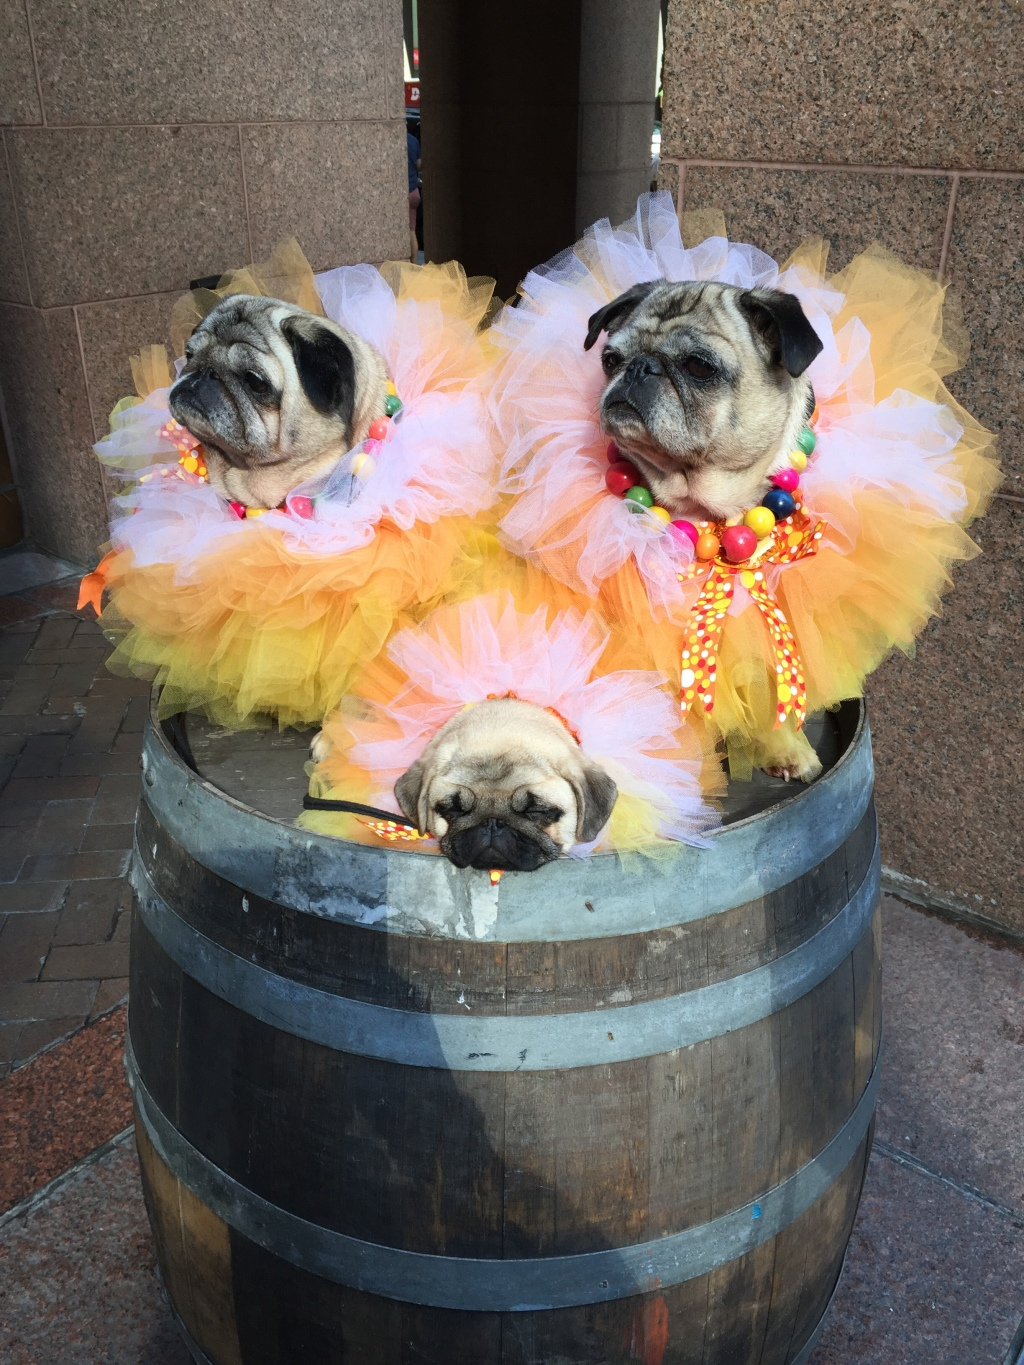 The Pugdashians, pug celebrities